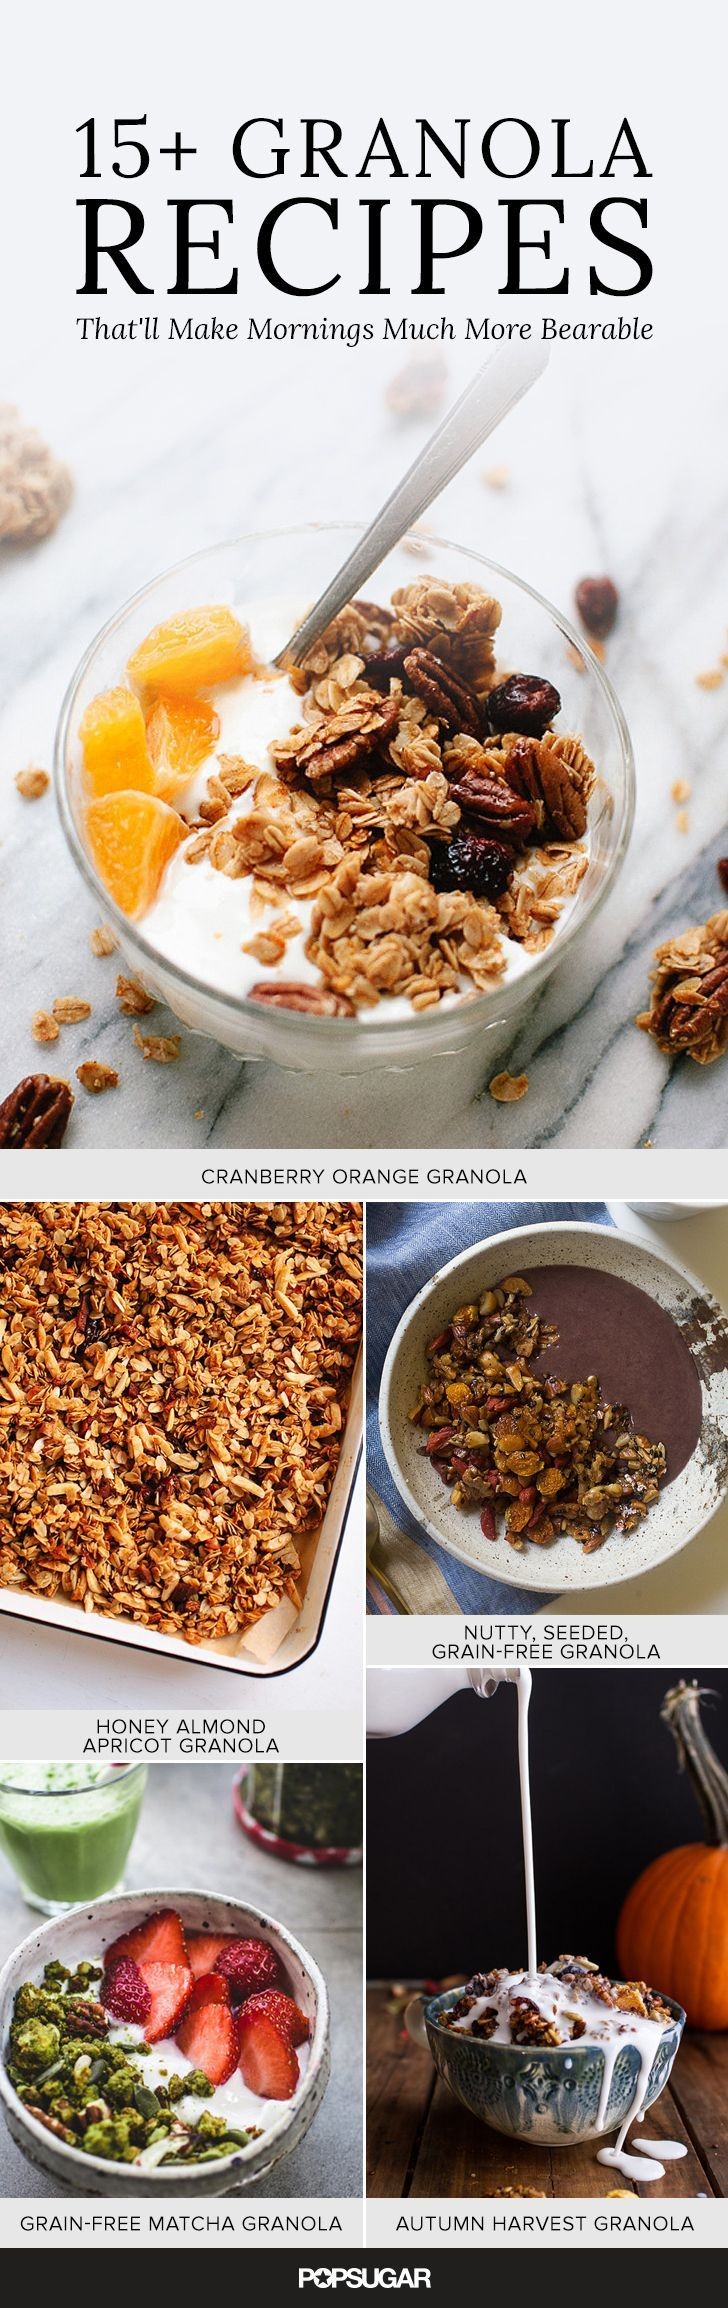 65 best images about homemade granola recipes on pinterest for Food bar 810